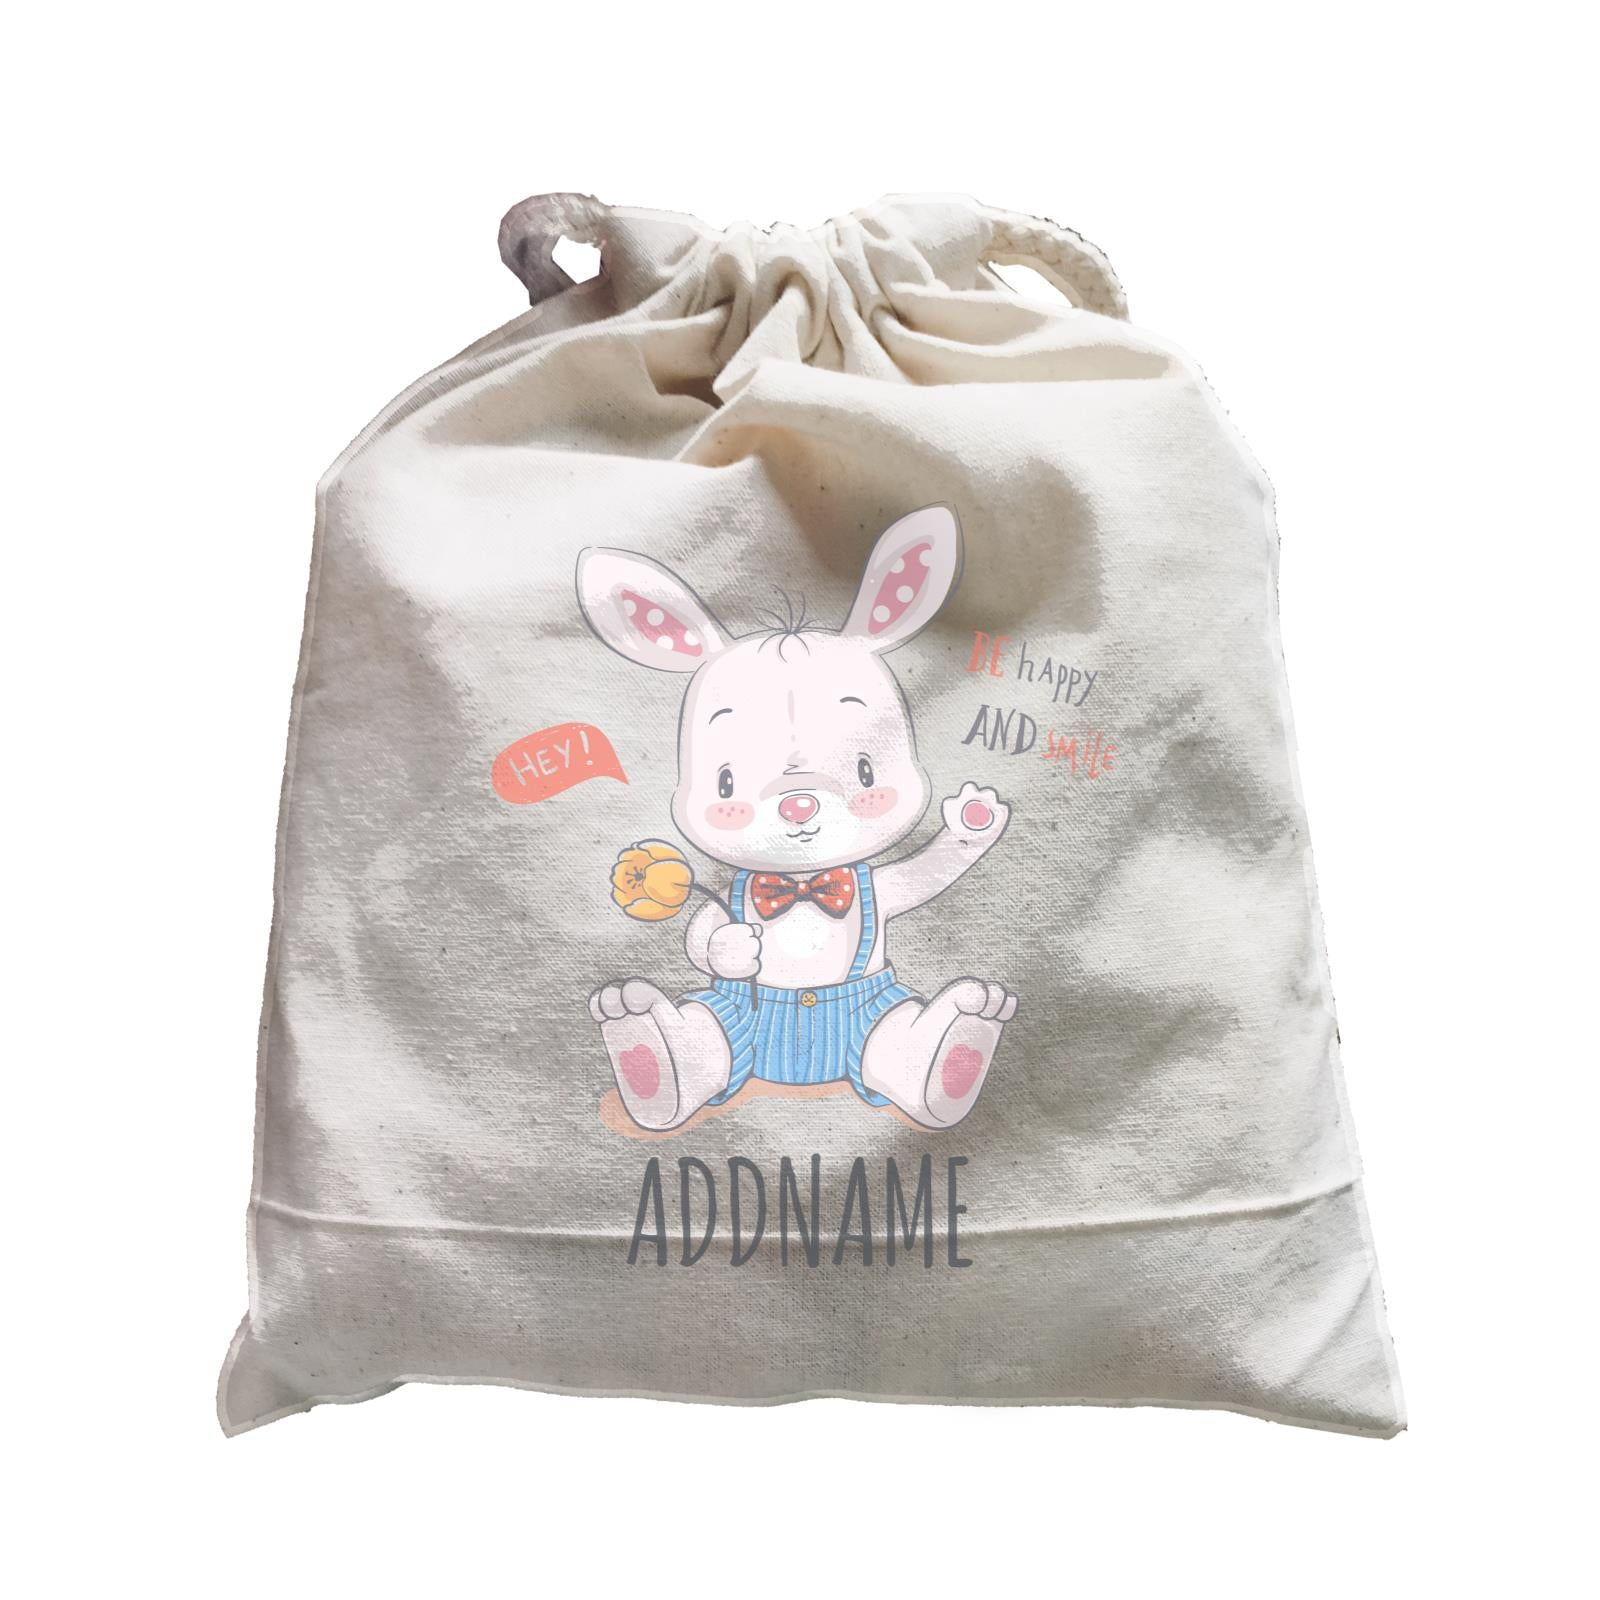 Be Happy and Smile Rabbit Satchel Personalizable Designs Cute Sweet Animal HG